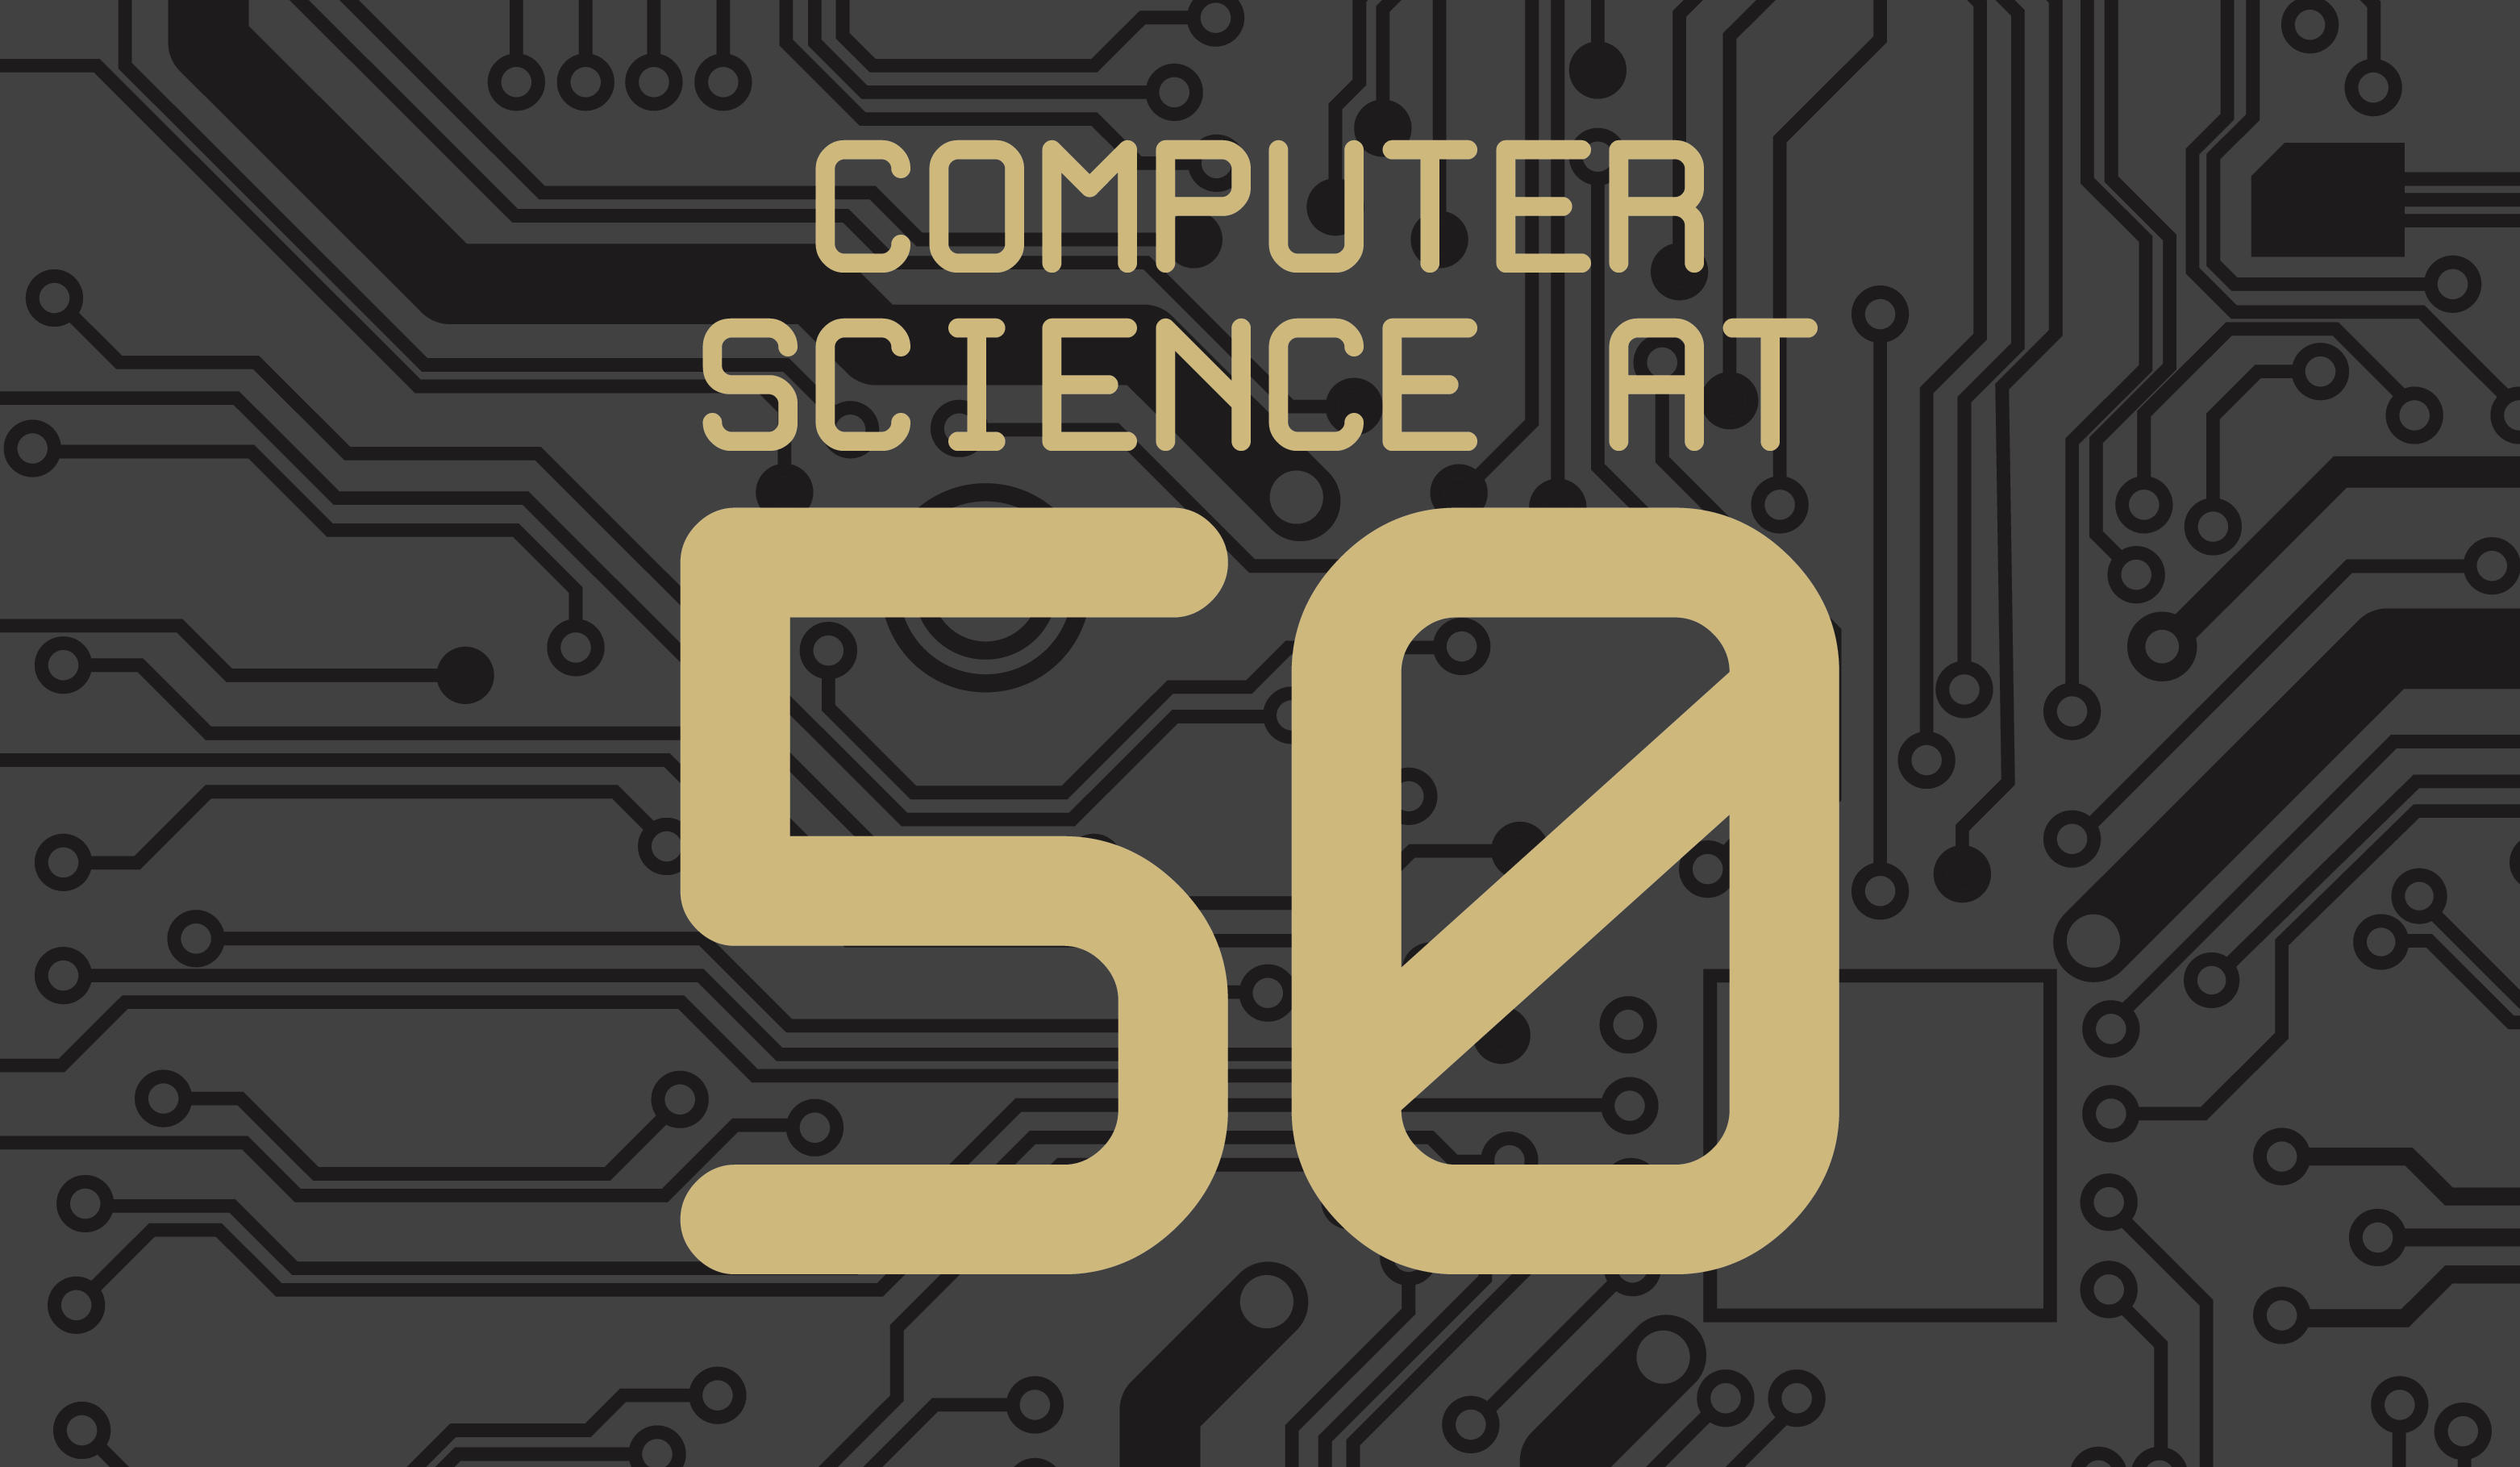 Computer Science at 50 graphic